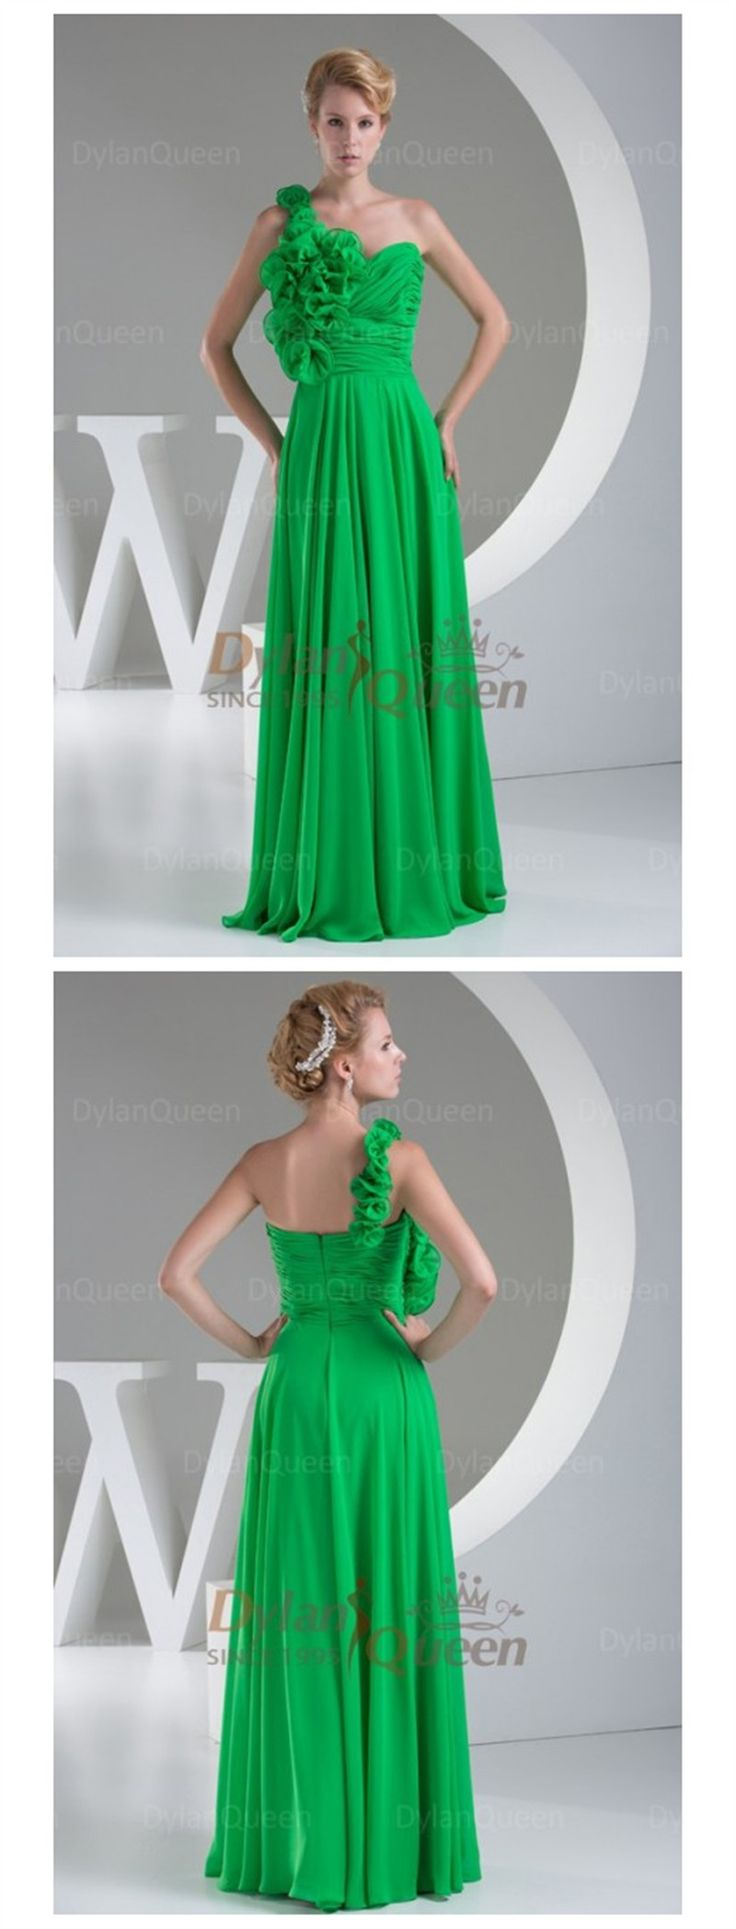 2015  #GREEN  Amazing A-Line/Princess One-Shoulder Sleeveless Hand Made Flower prom/evening dress  @dylanqueen